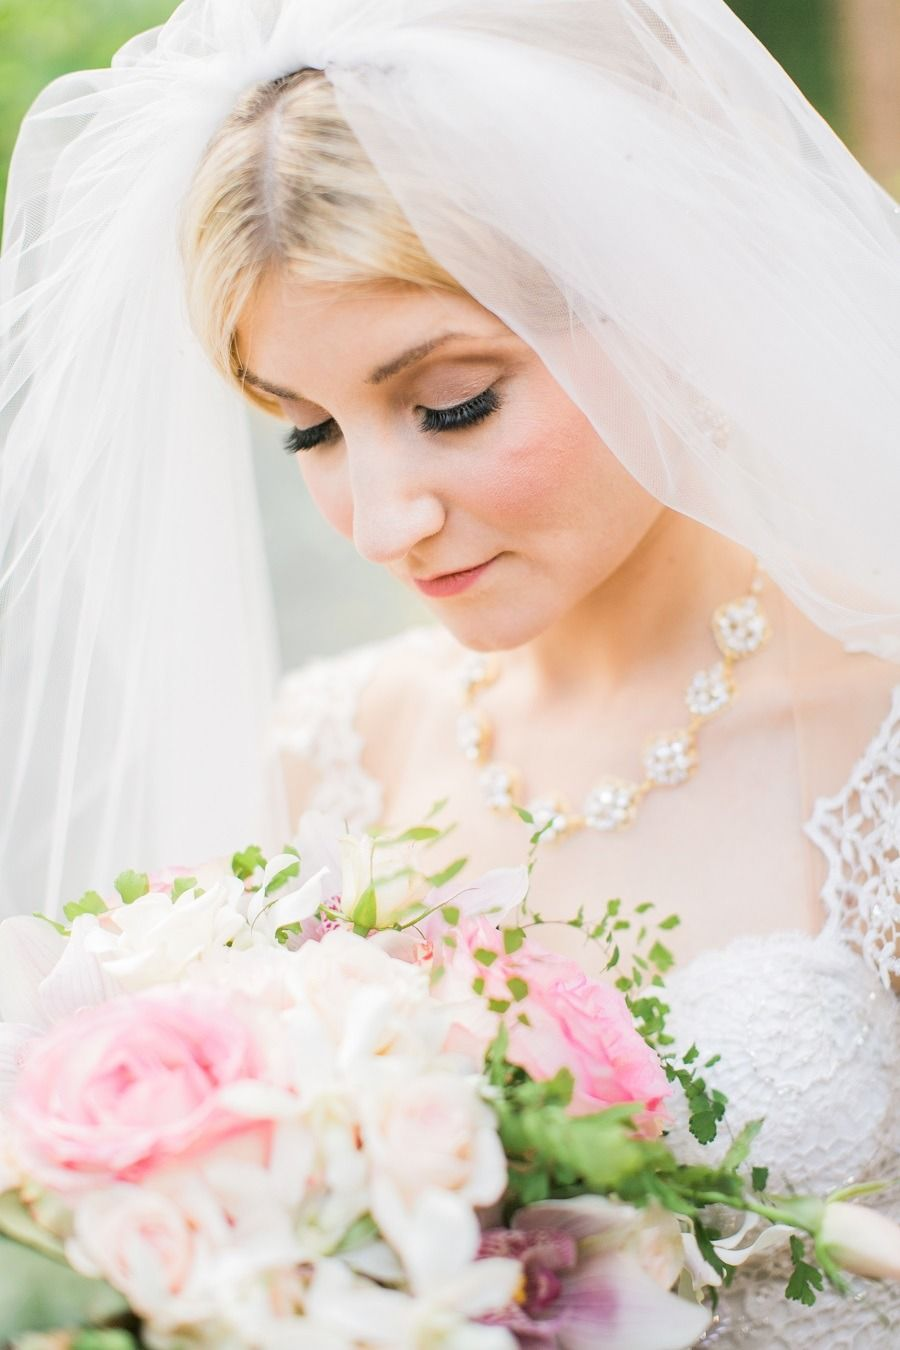 Beautiful Bride: http://www.stylemepretty.com/2015/02/19/fairytale-wedding-at-thornewood-castle/ | Photography: Stephanie Cristalli - www.stephaniecristalli.com/